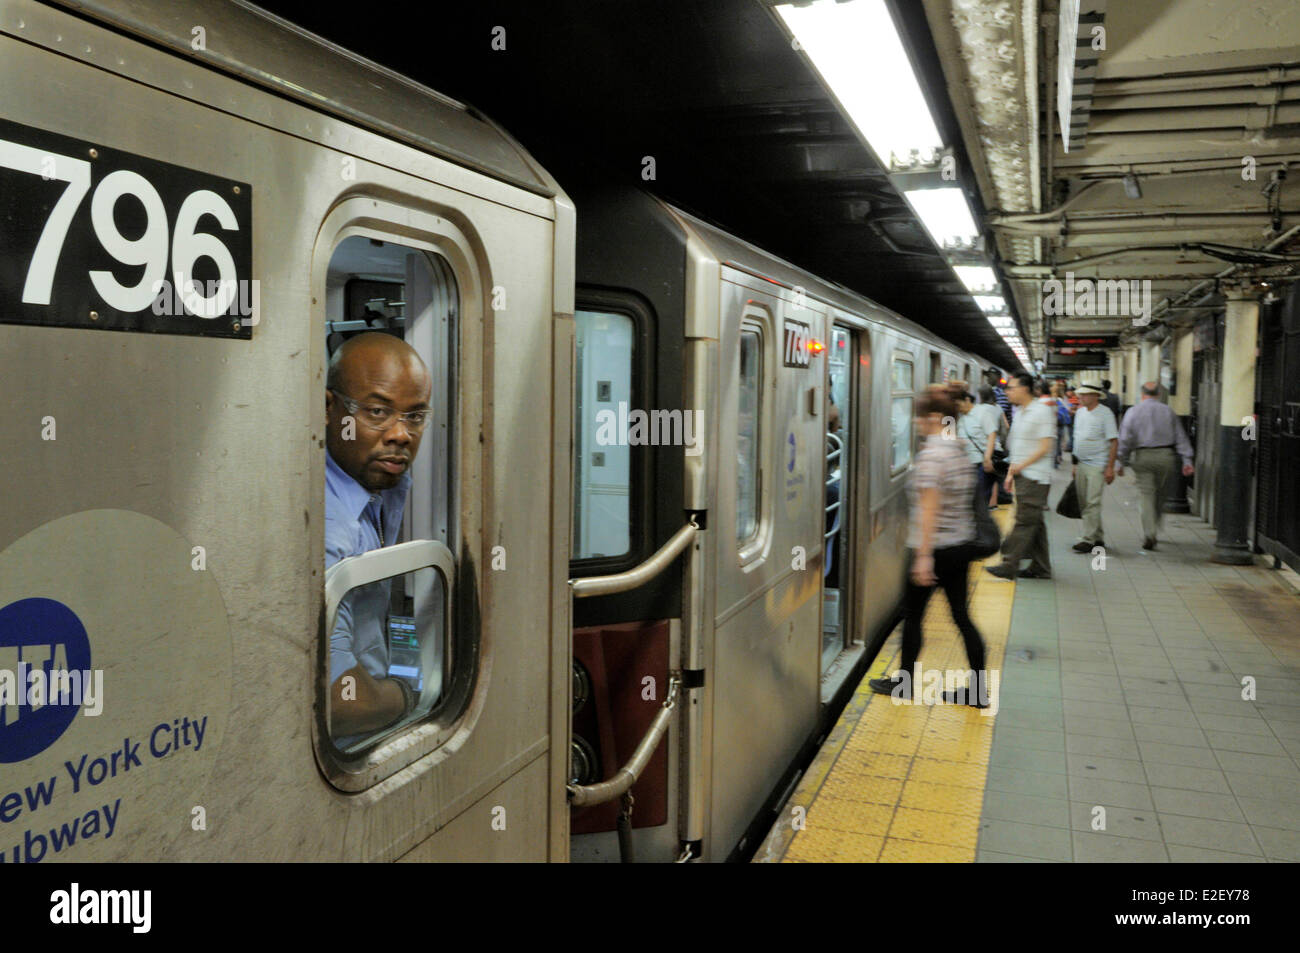 United States, New York, subway station in New York's 86th Street, passengers on the platform - Stock Image